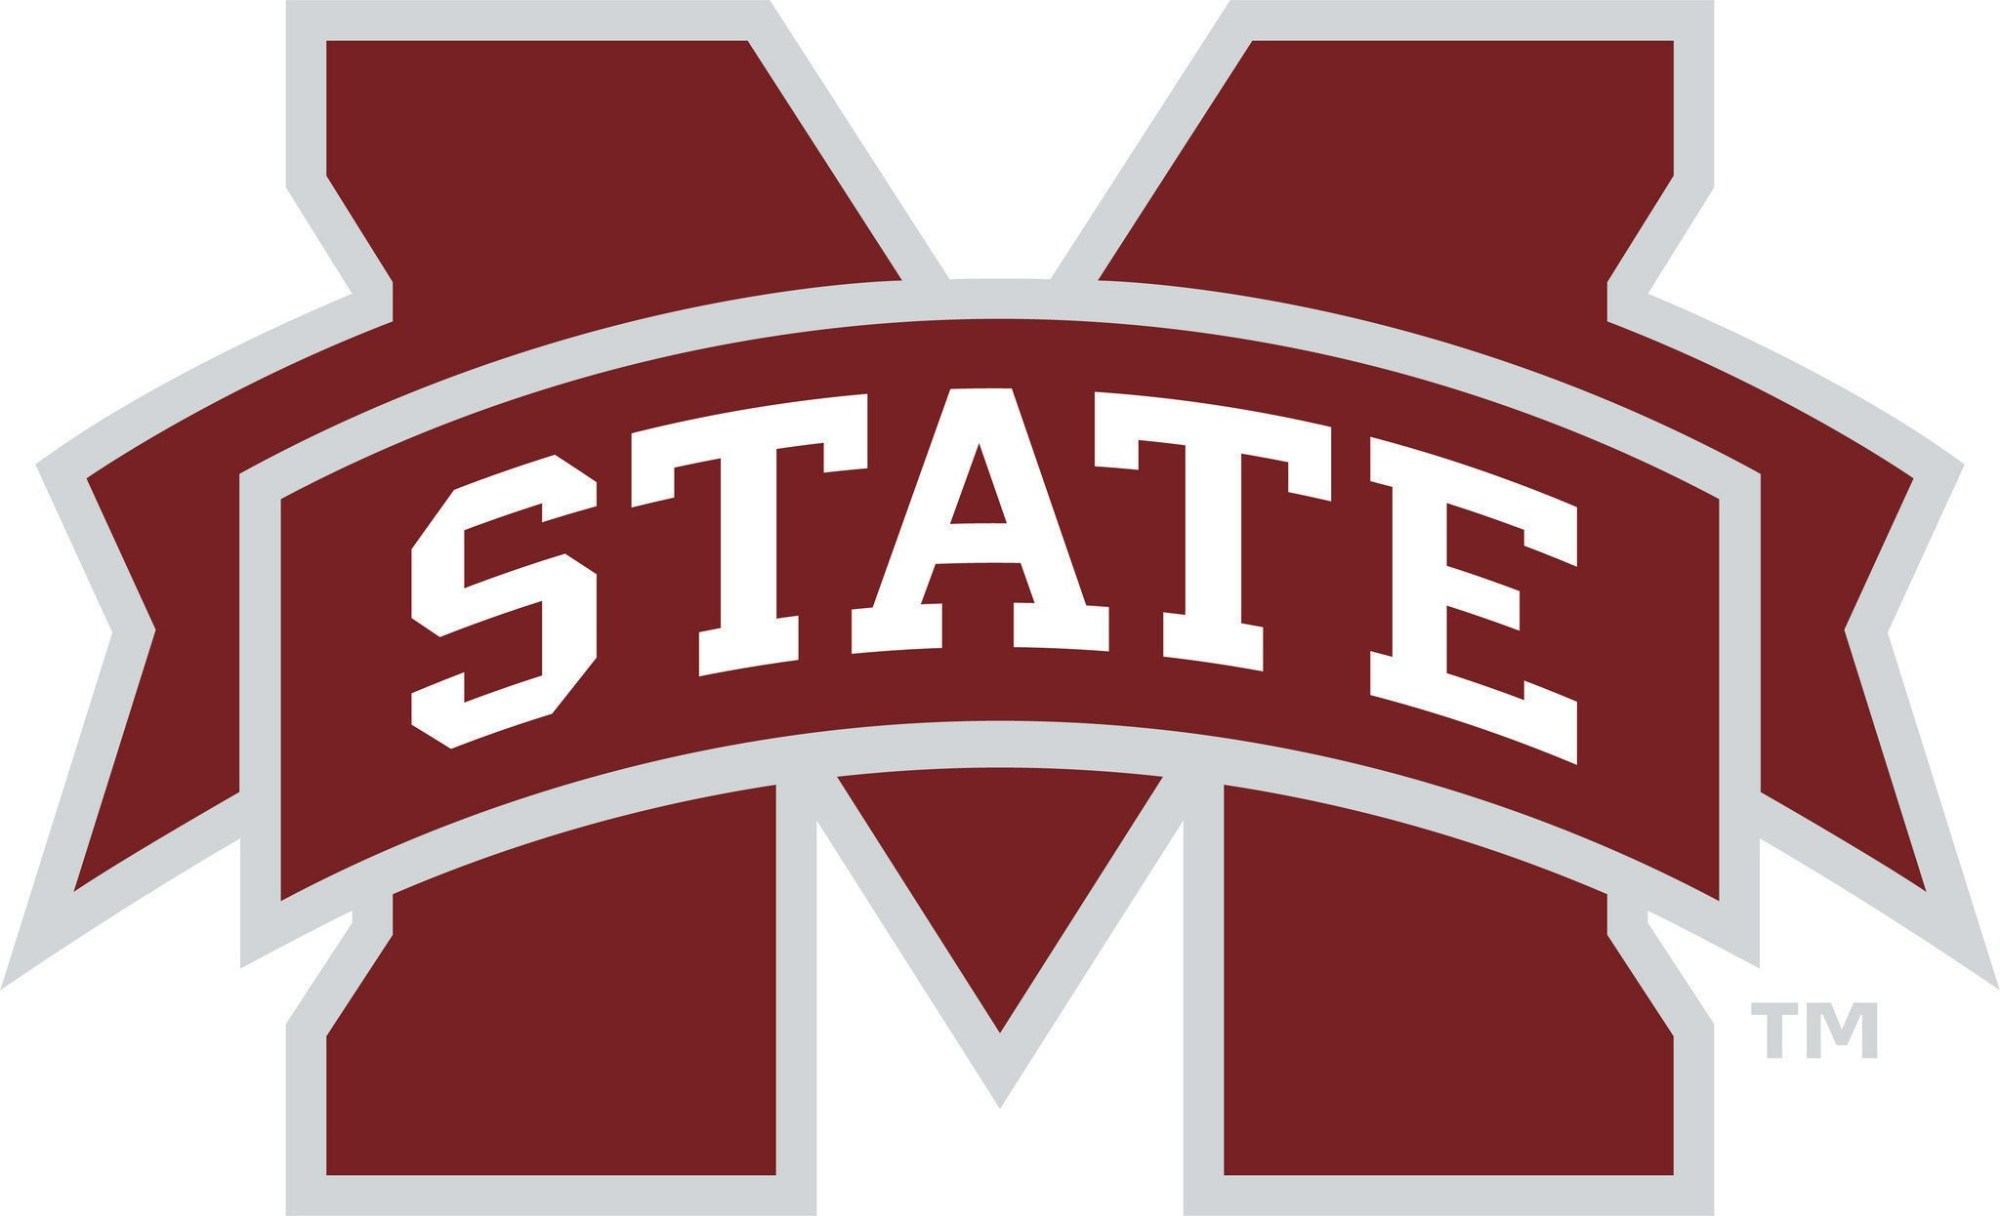 Dan Mullen Signs Extension with Mississippi State (Image 1)_14226